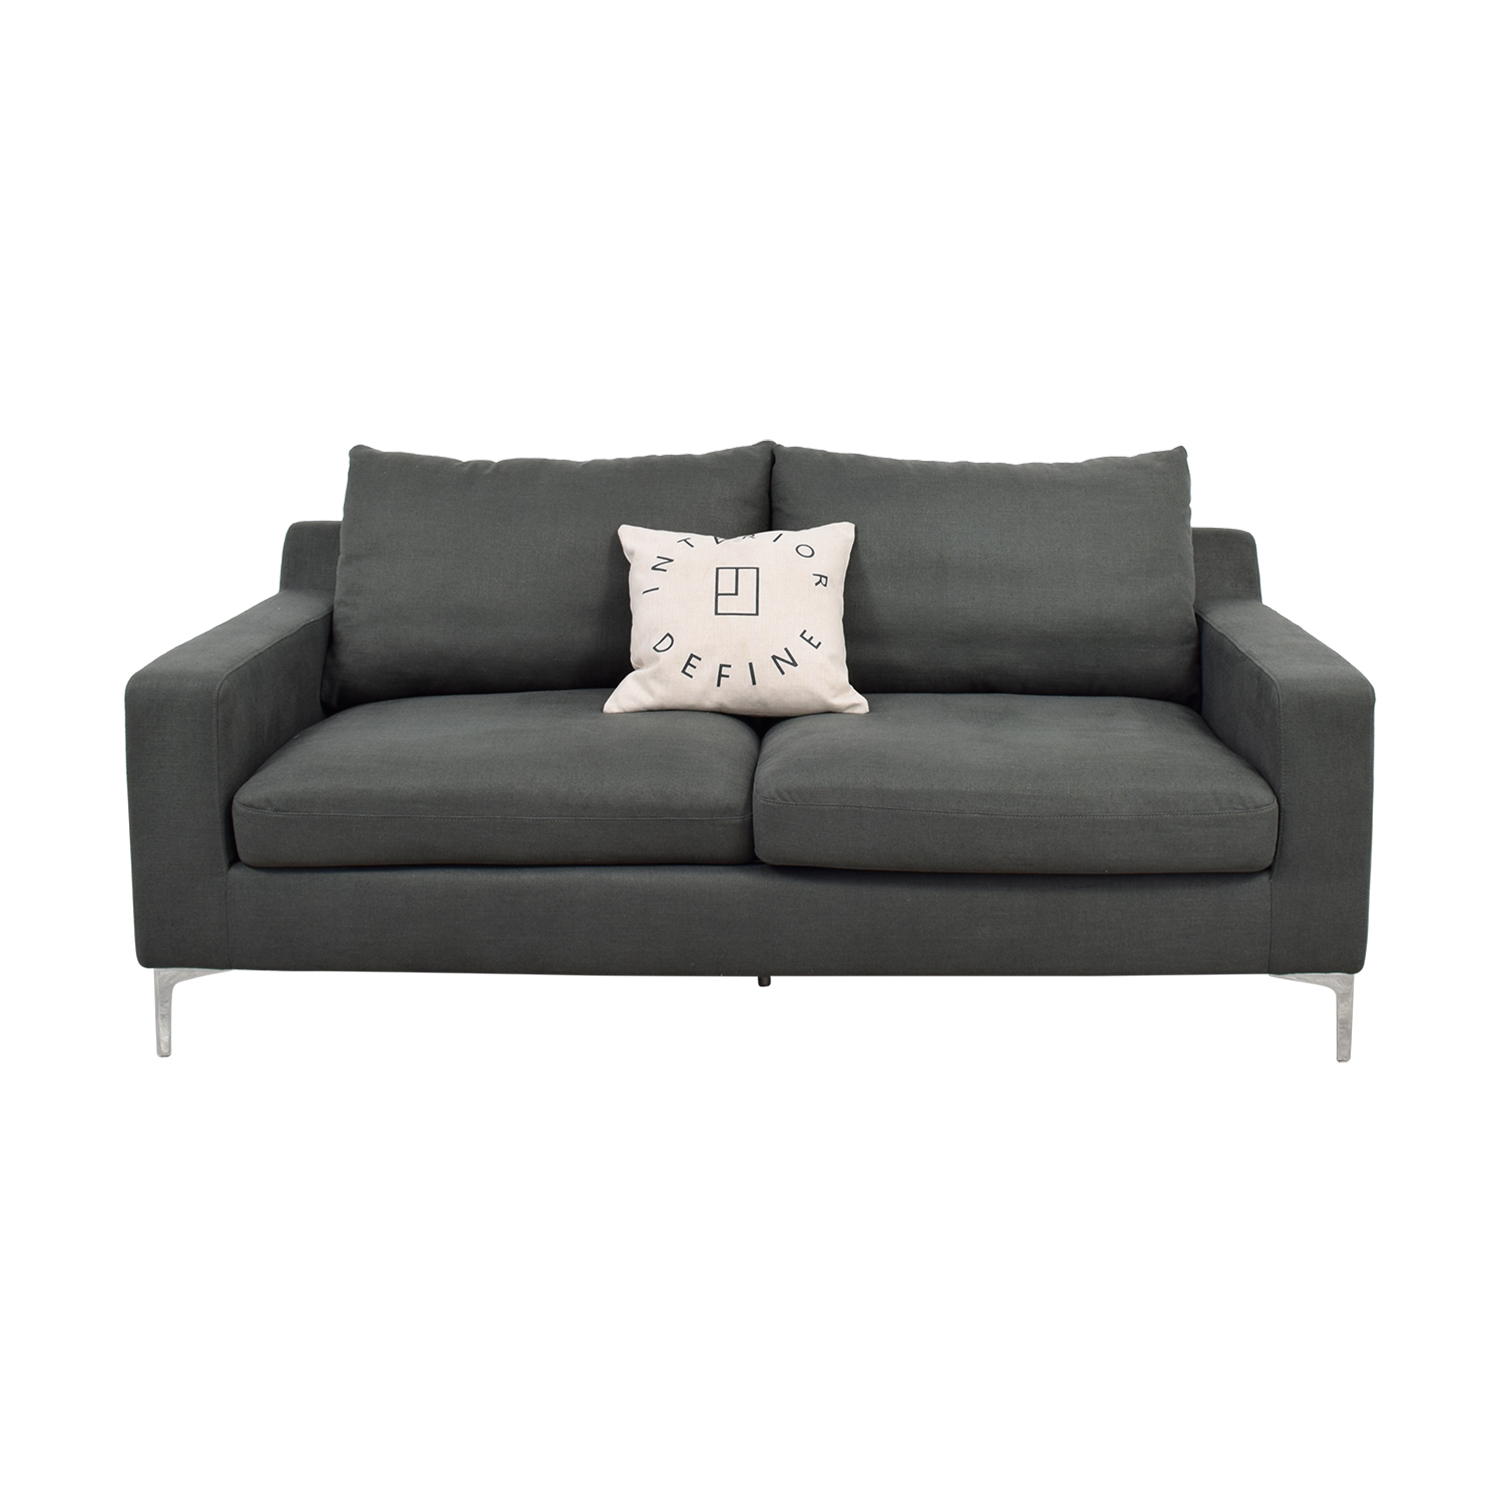 Gray Two Cushion Sofa with Pillow for sale